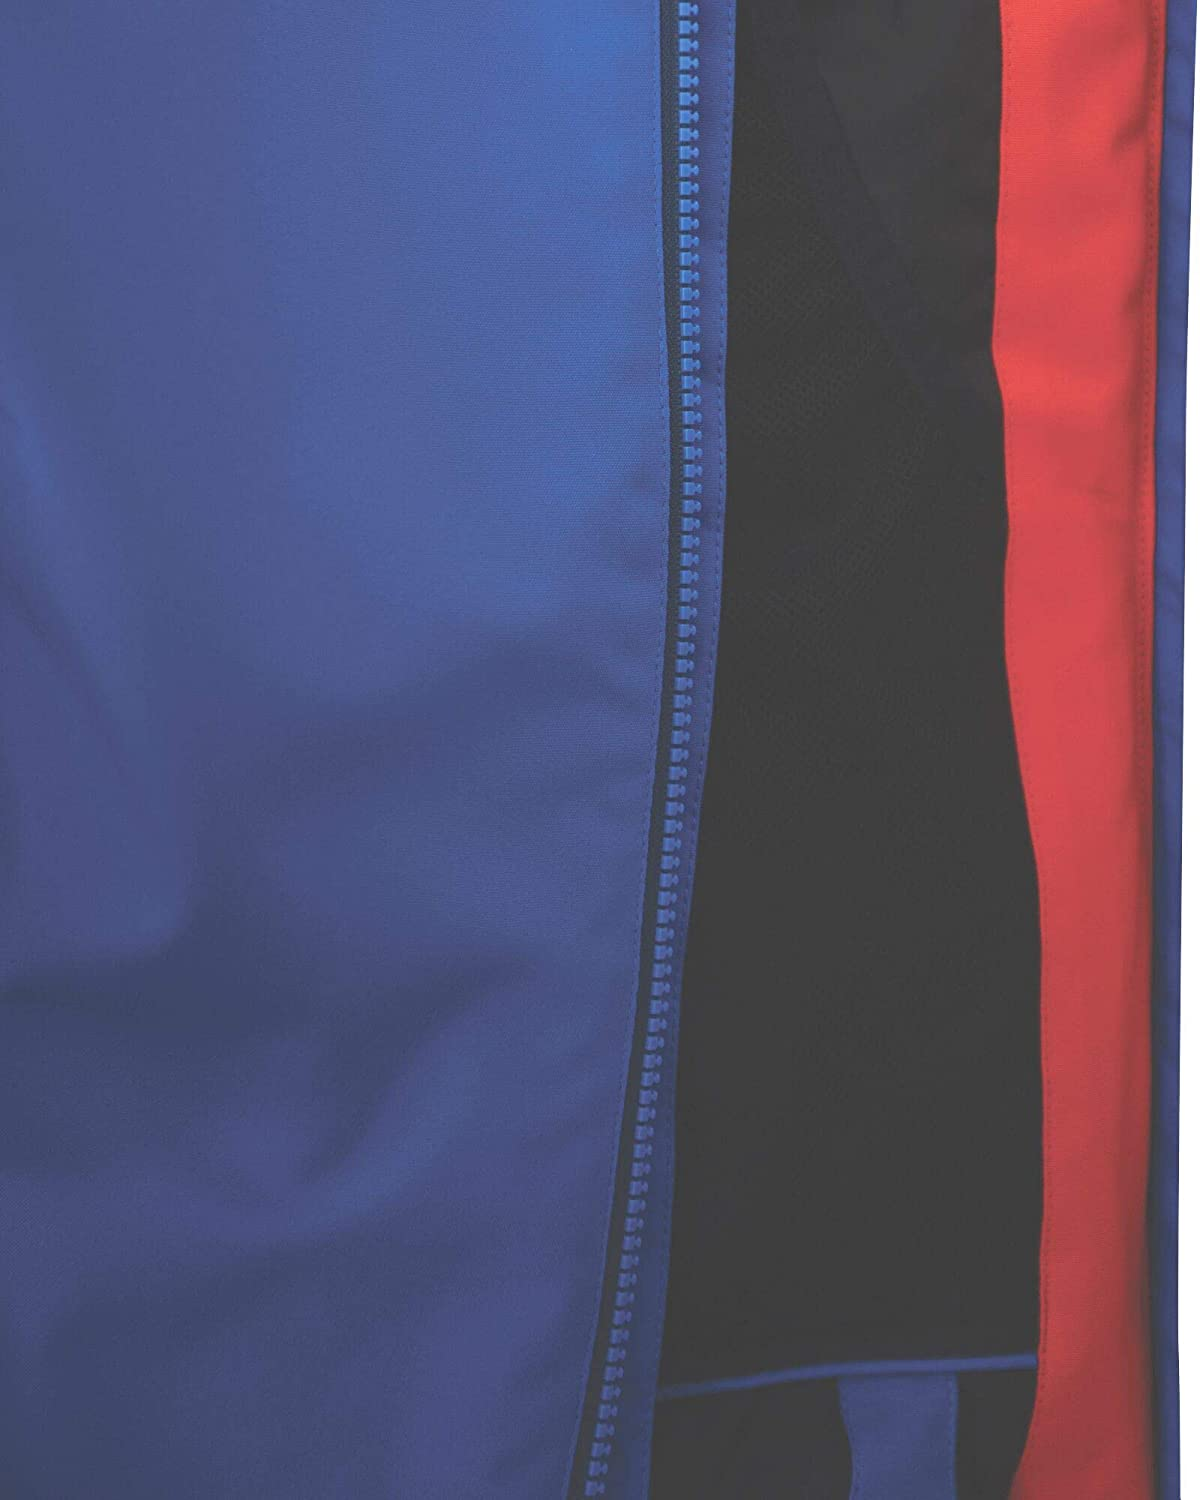 Articulated Sleeve Design /& Snowskirt Isolante Uomo Dare 2B Intermit Waterproof /& Breathable High Loft Insulated Ski /& Snowboard Jacket with Foldaway Hood Giacca Impermeabile